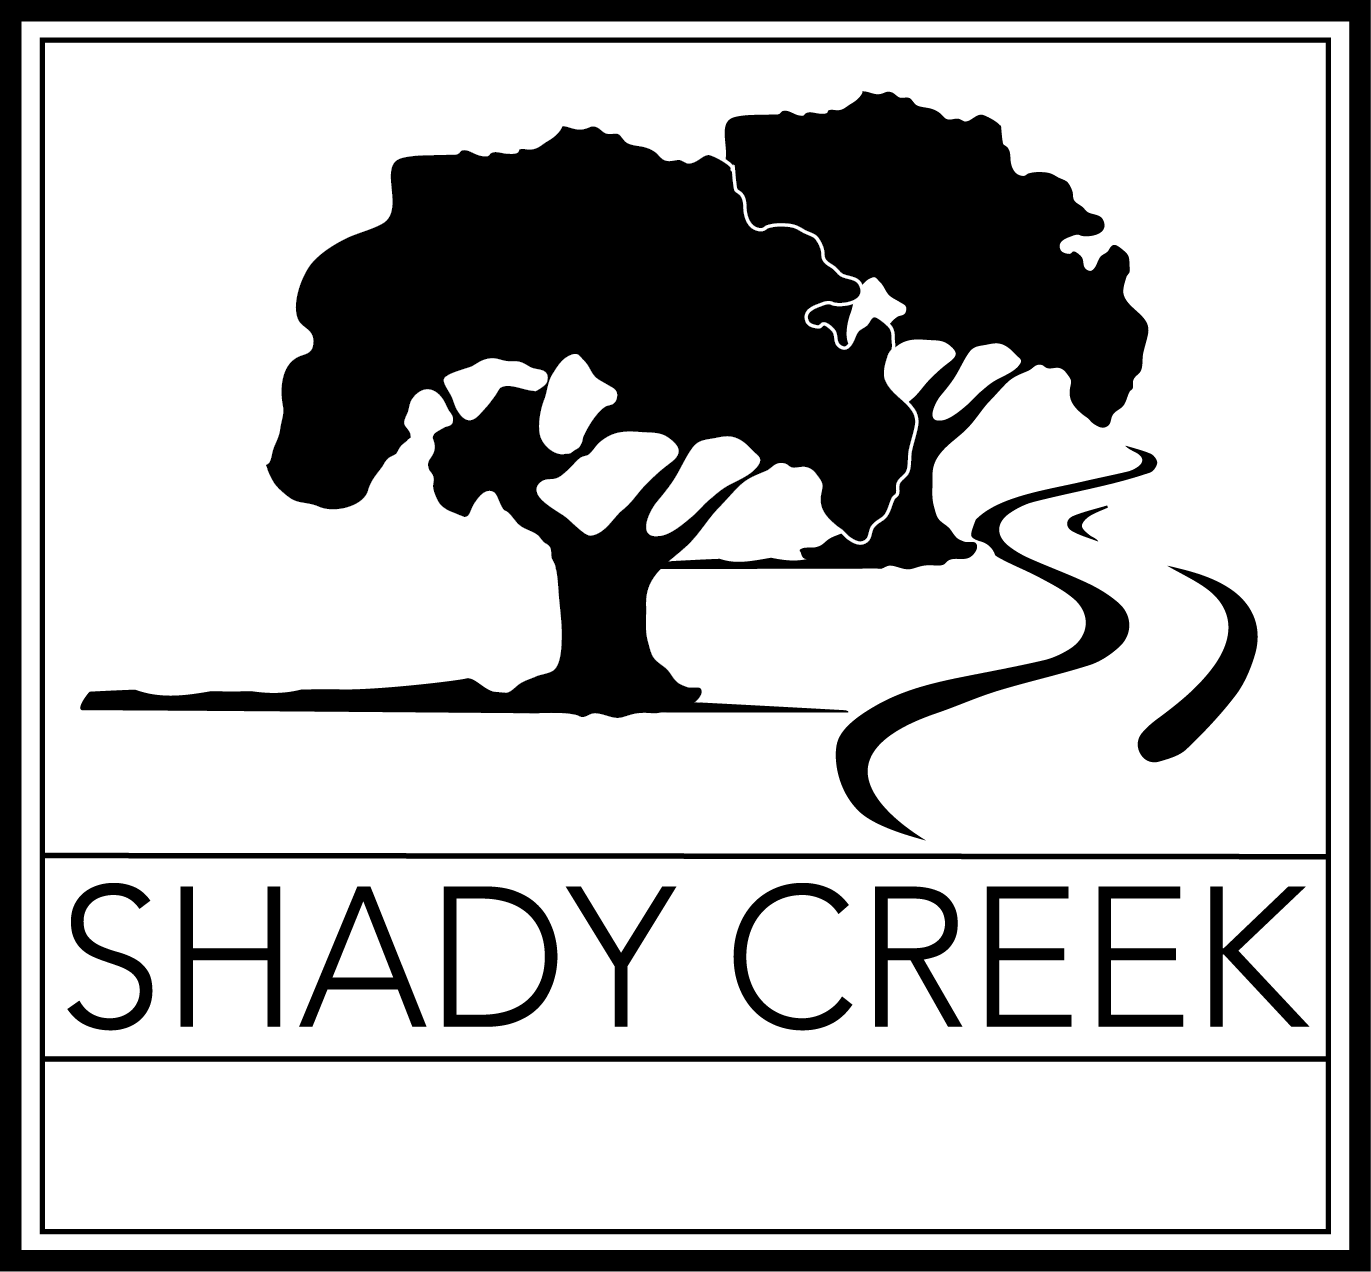 Shady Creek Texas